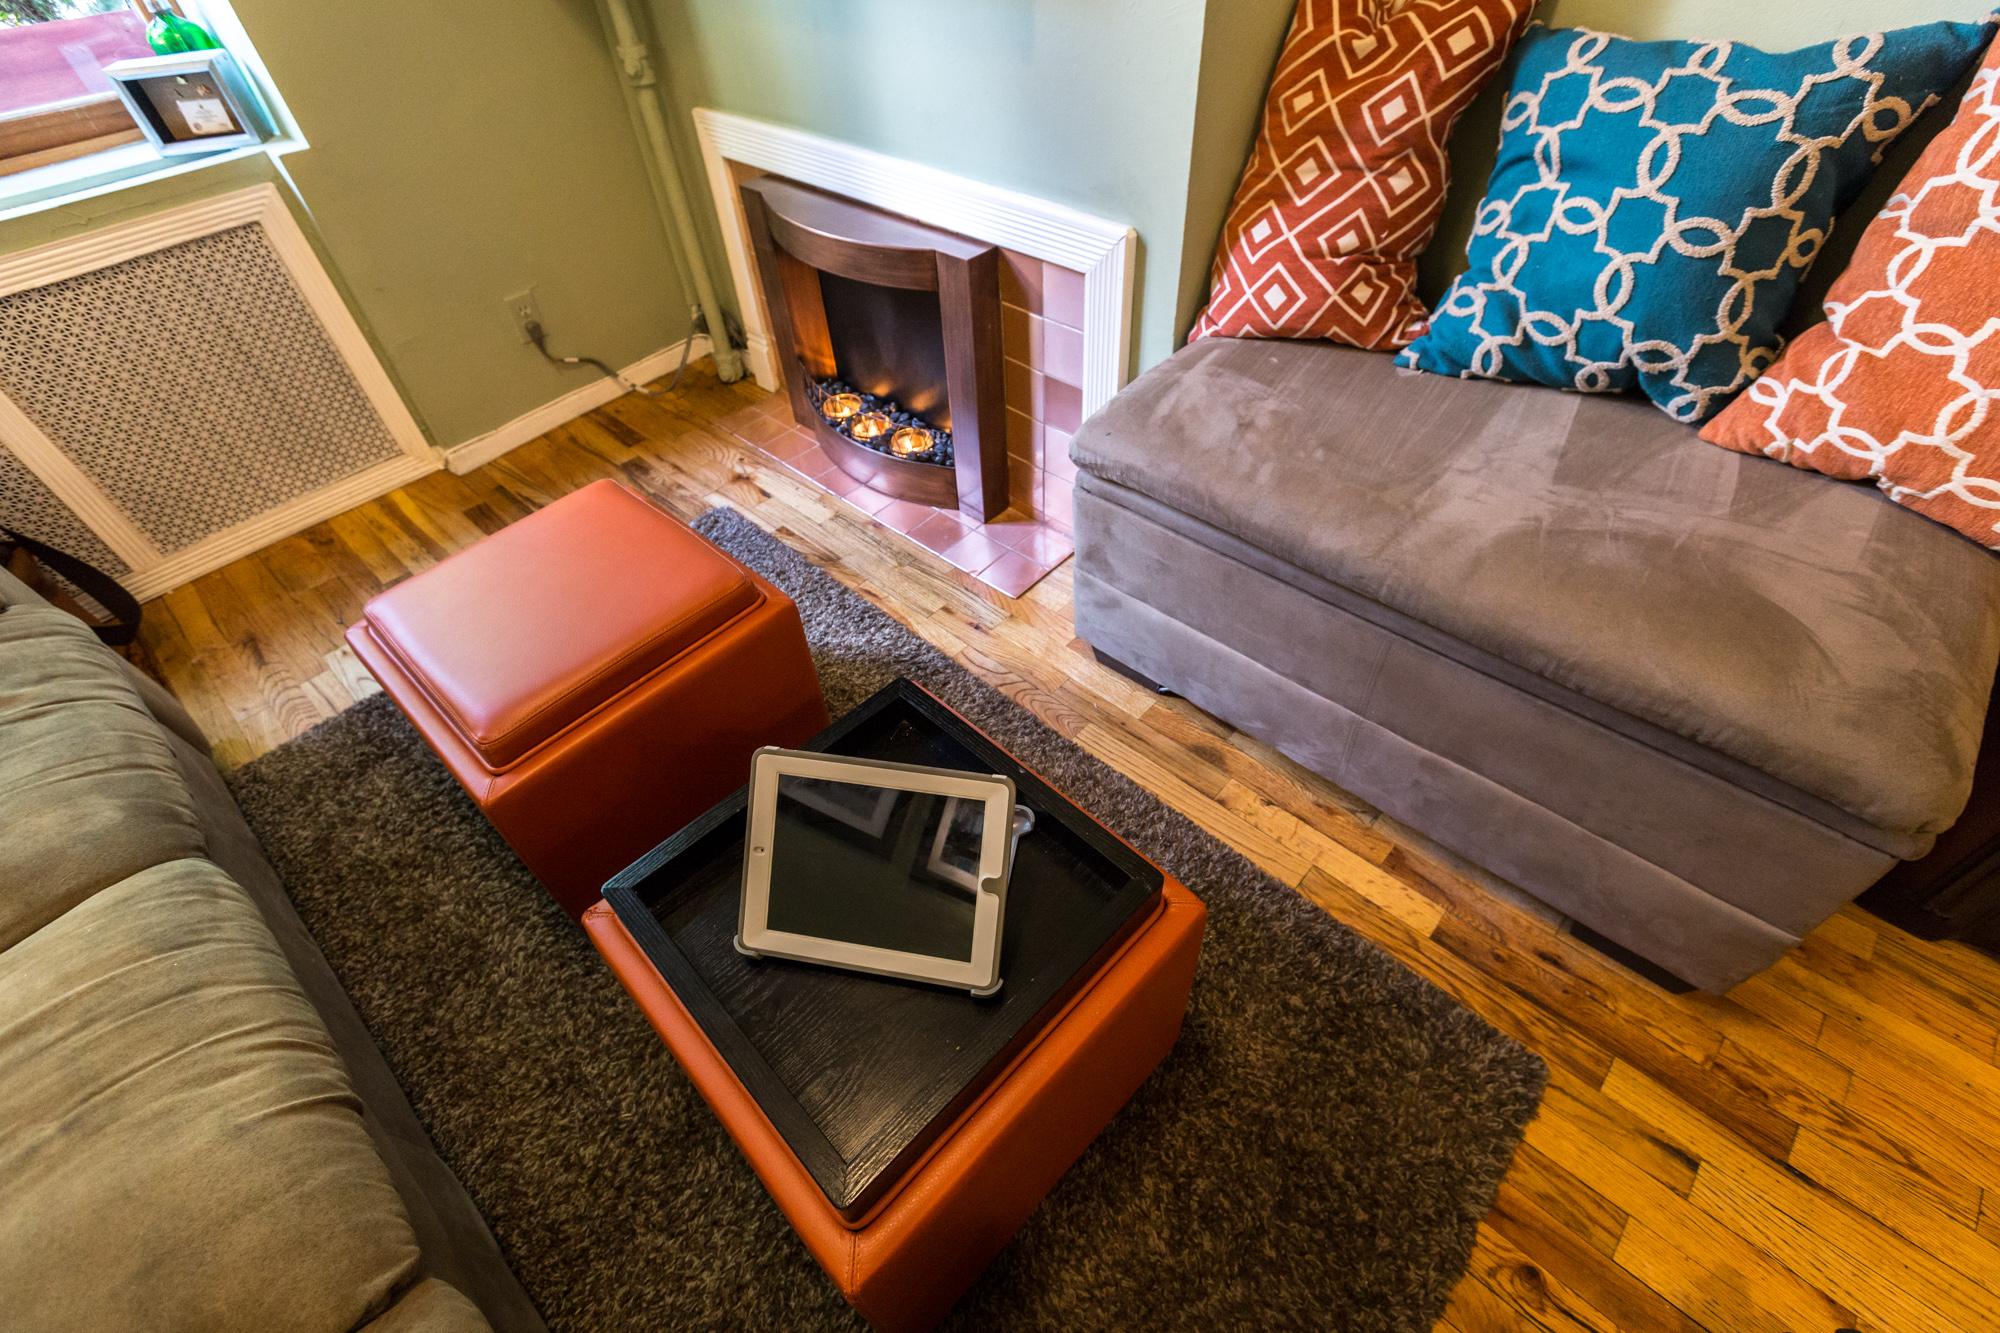 Studio Apartment Hoboken in a tiny gramercy duplex, carpentry skills pay off - curbed ny